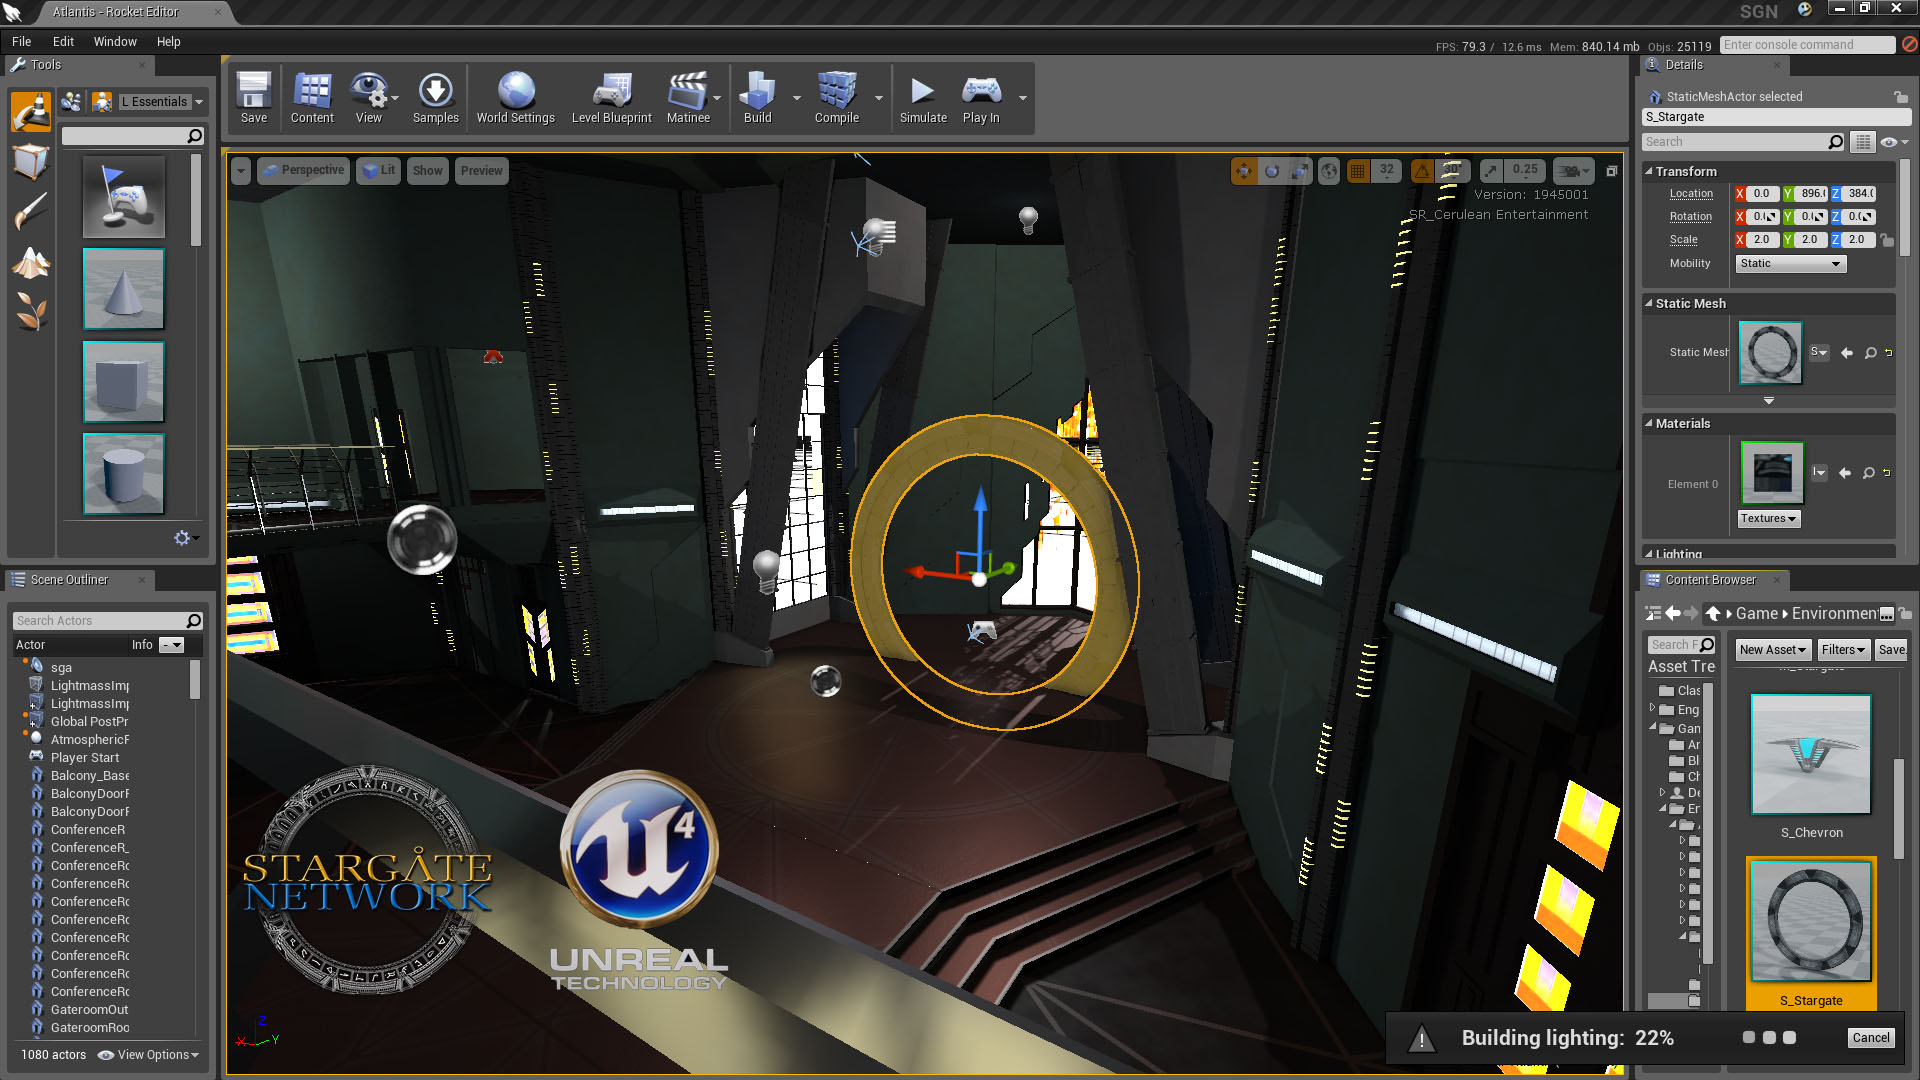 Stargate Network: Unreal Engine 4 Interface (Atlantis)